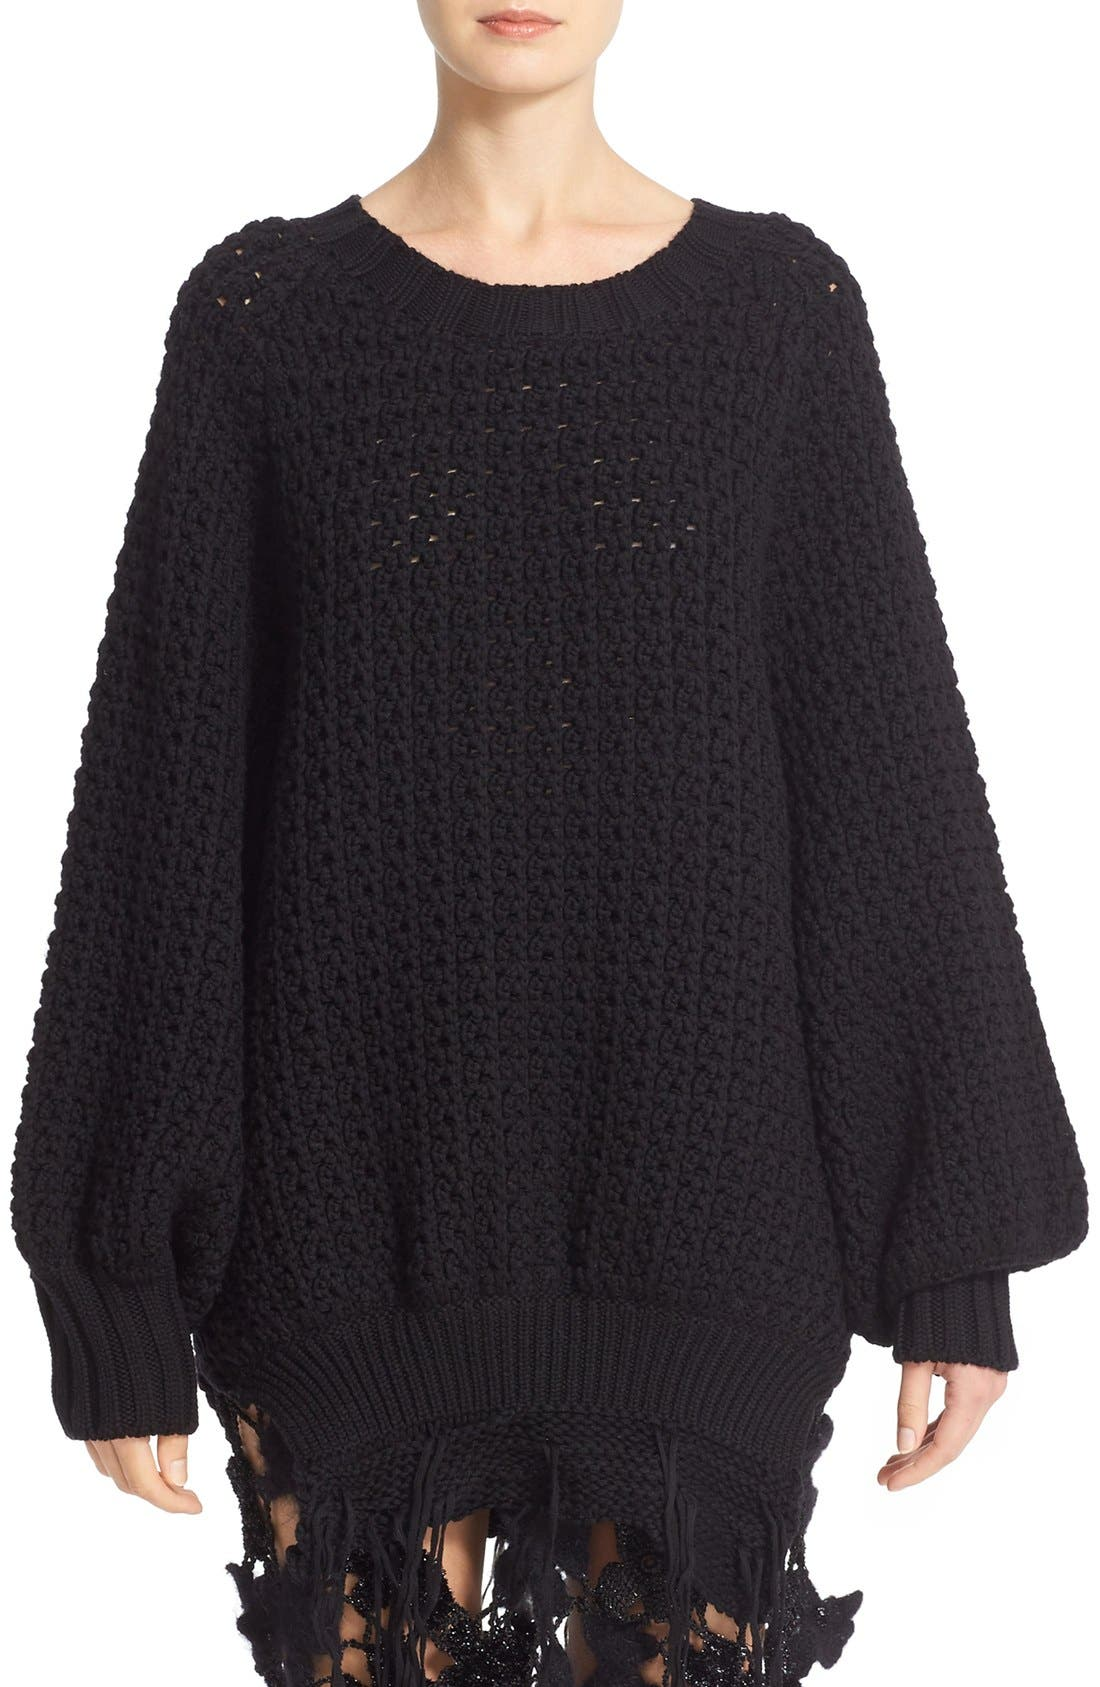 Alternate Image 1 Selected - Simone Rocha Long Chunky Knit Wool Sweater with Fringe